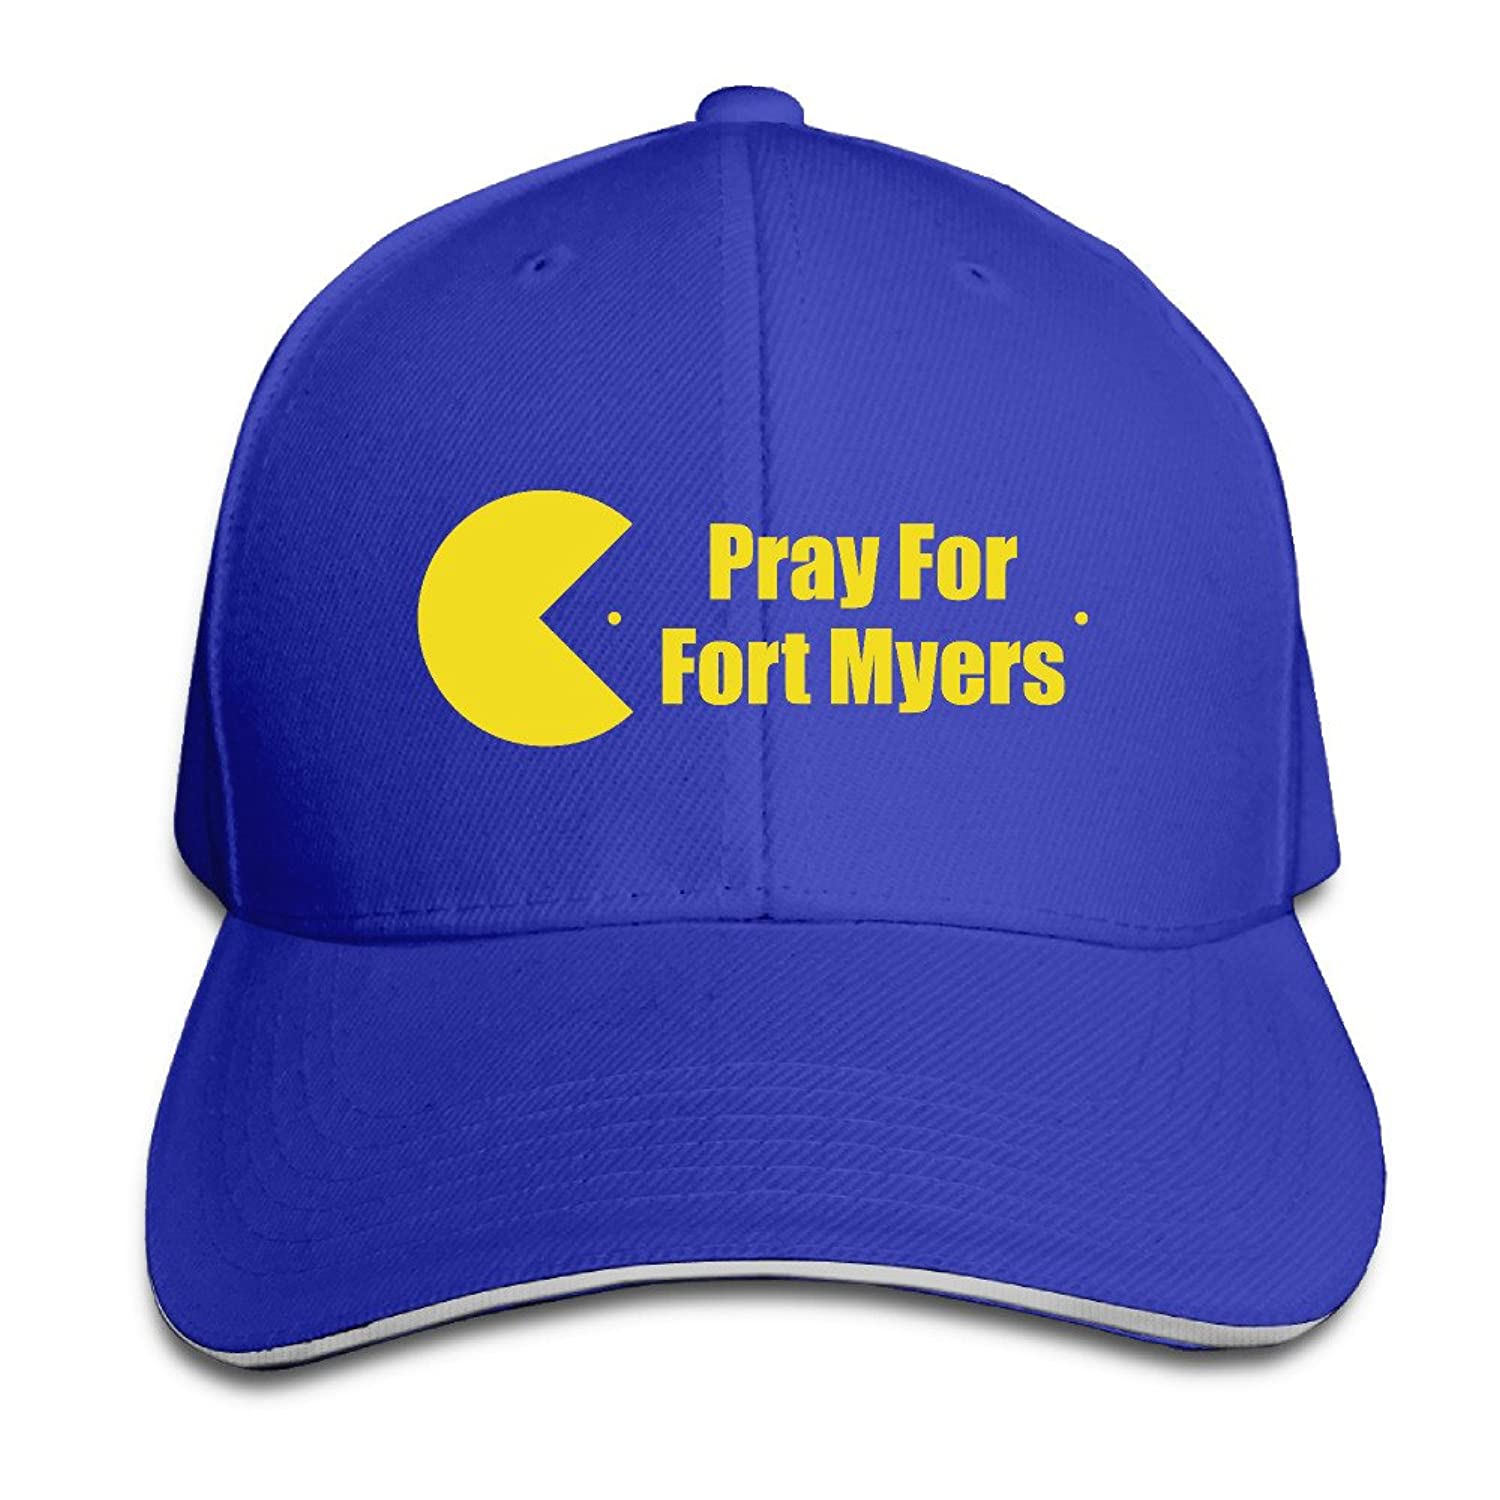 FOODE Pray For Fort Myers Peaked Baseball Cap Snapback Hats